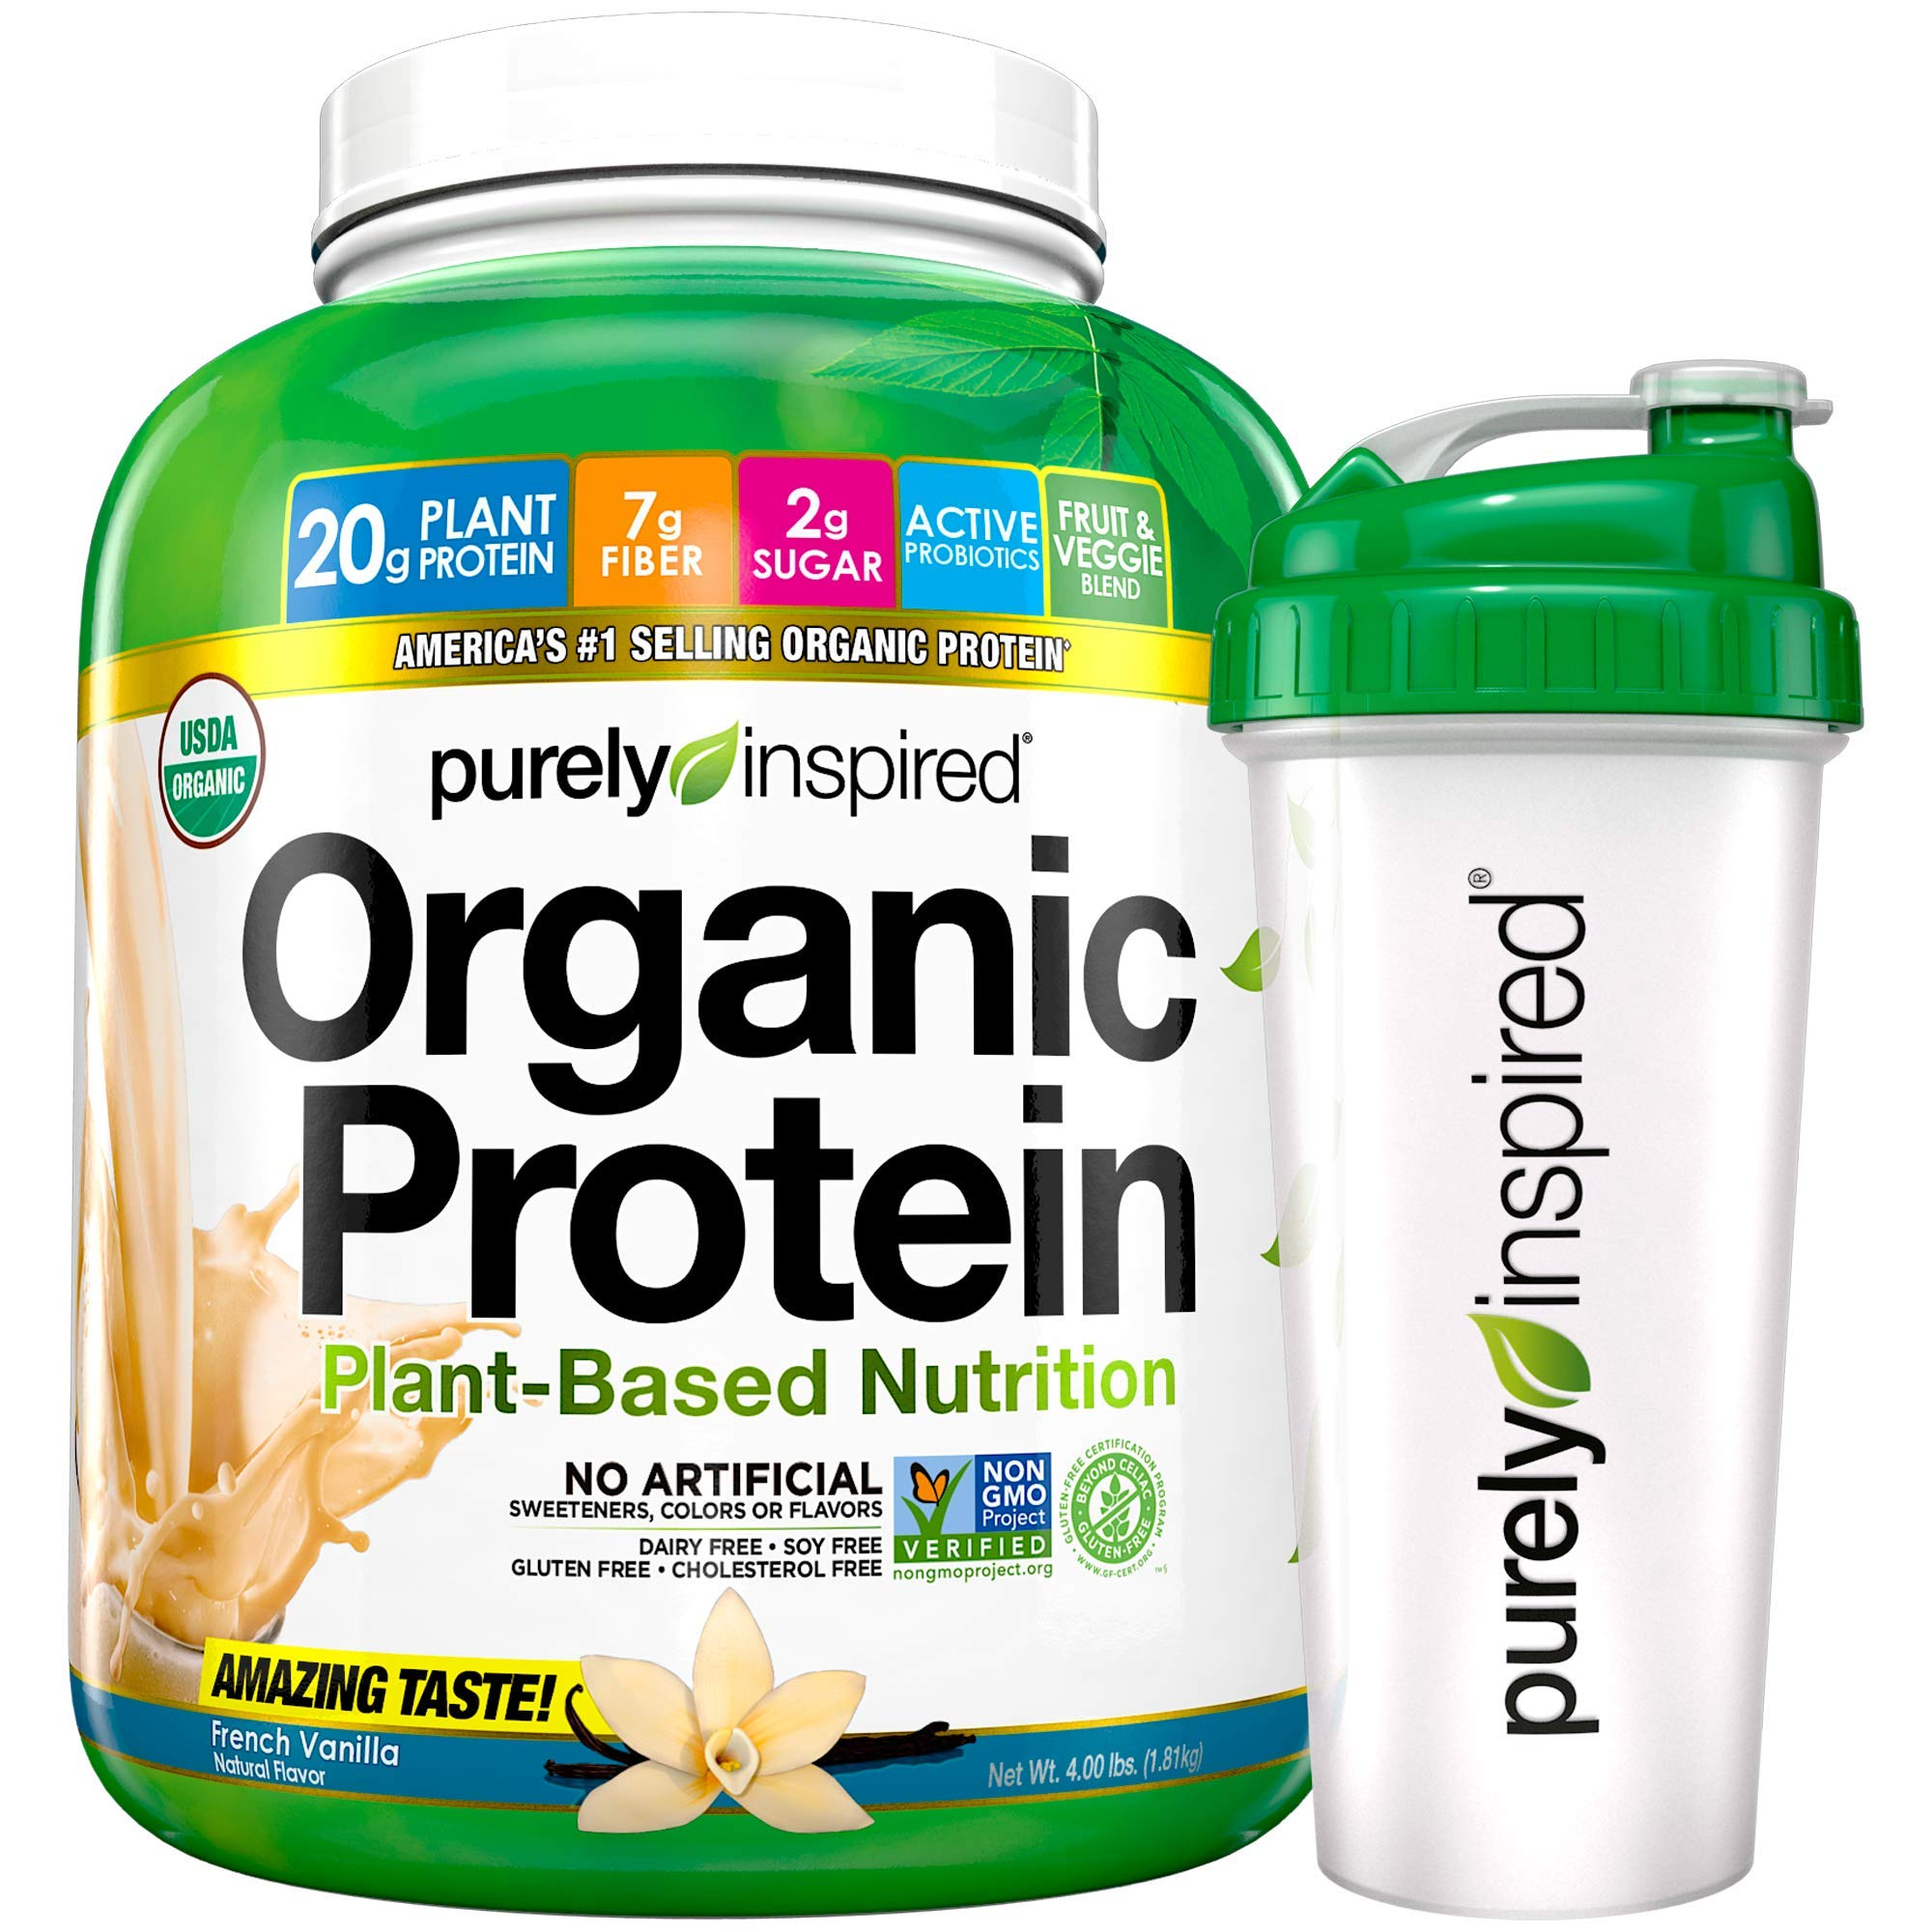 Purely Inspired Organic Protein Shake Powder + Shaker Bottle, 100% Plant Based with Pea & Brown Rice Protein (Non-GMO, Gluten Free, Vegan Friendly), French Vanilla, 4lbs by Purely Inspired